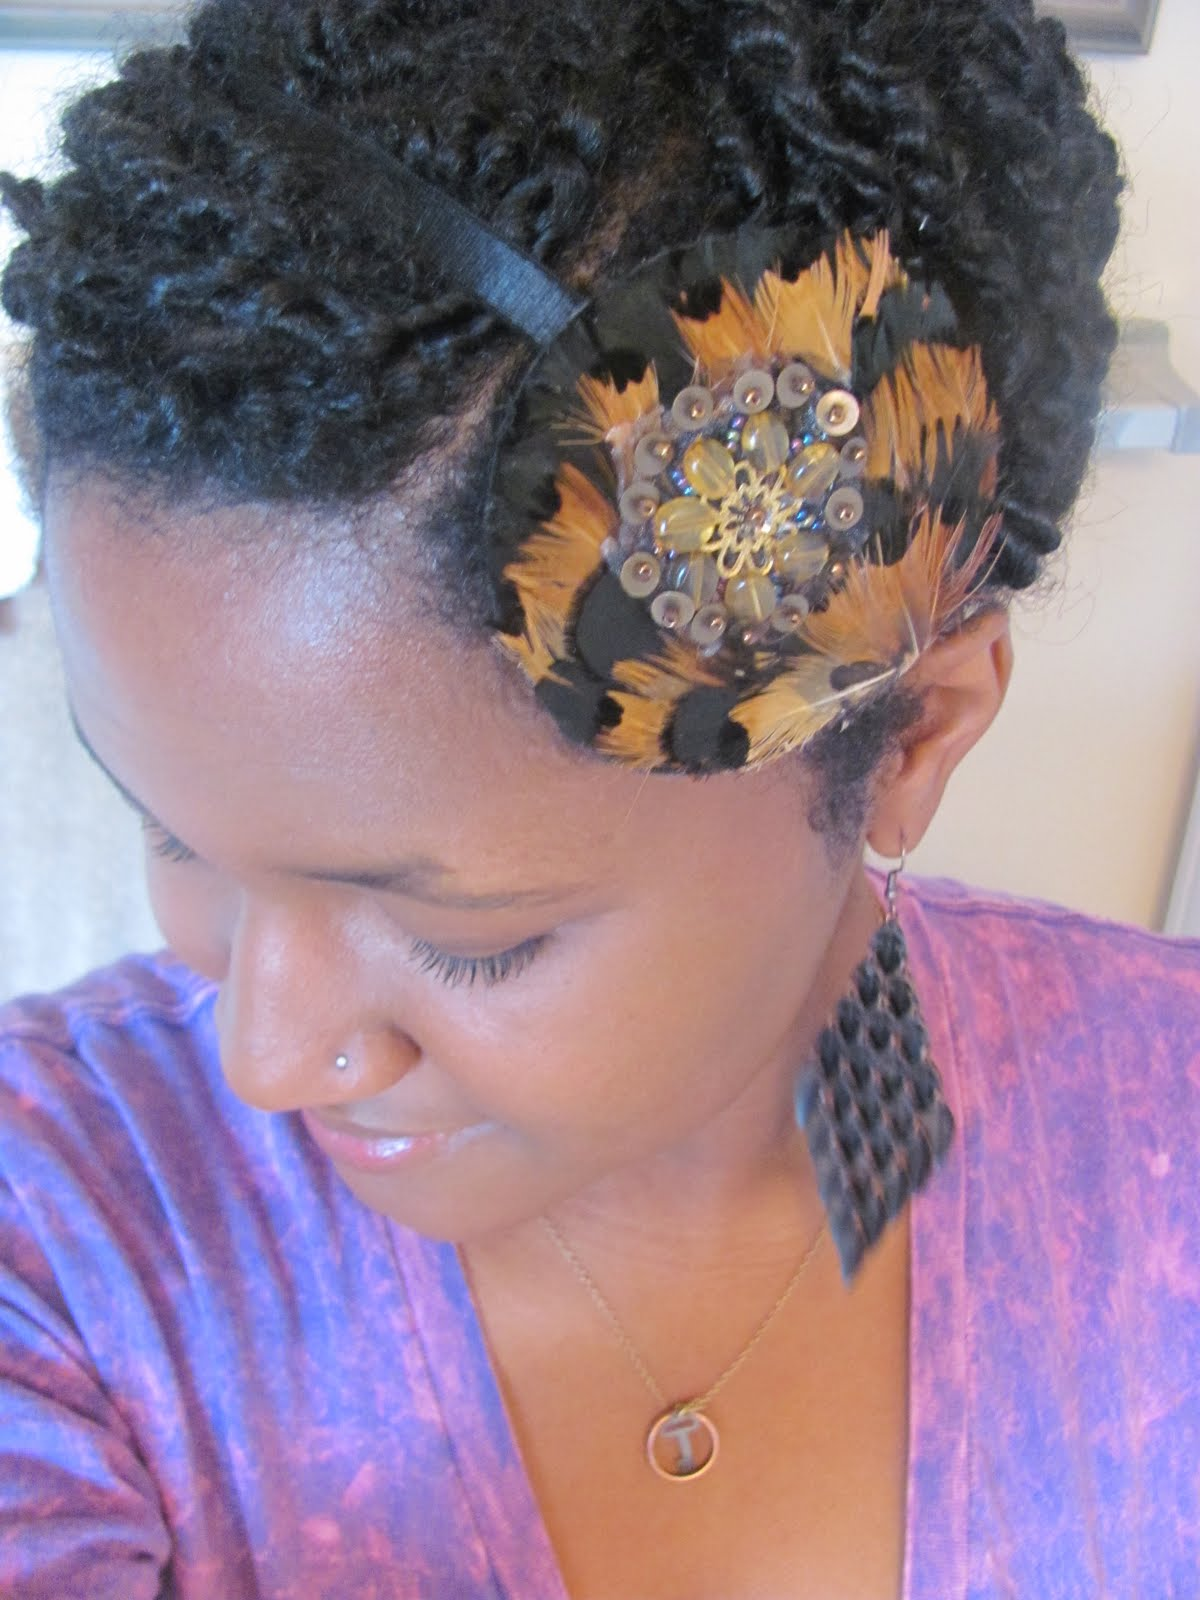 Long Lasting Natural Hair Styles A Routine for the Time Challenged  CurlyNikki  Natural Hair Care